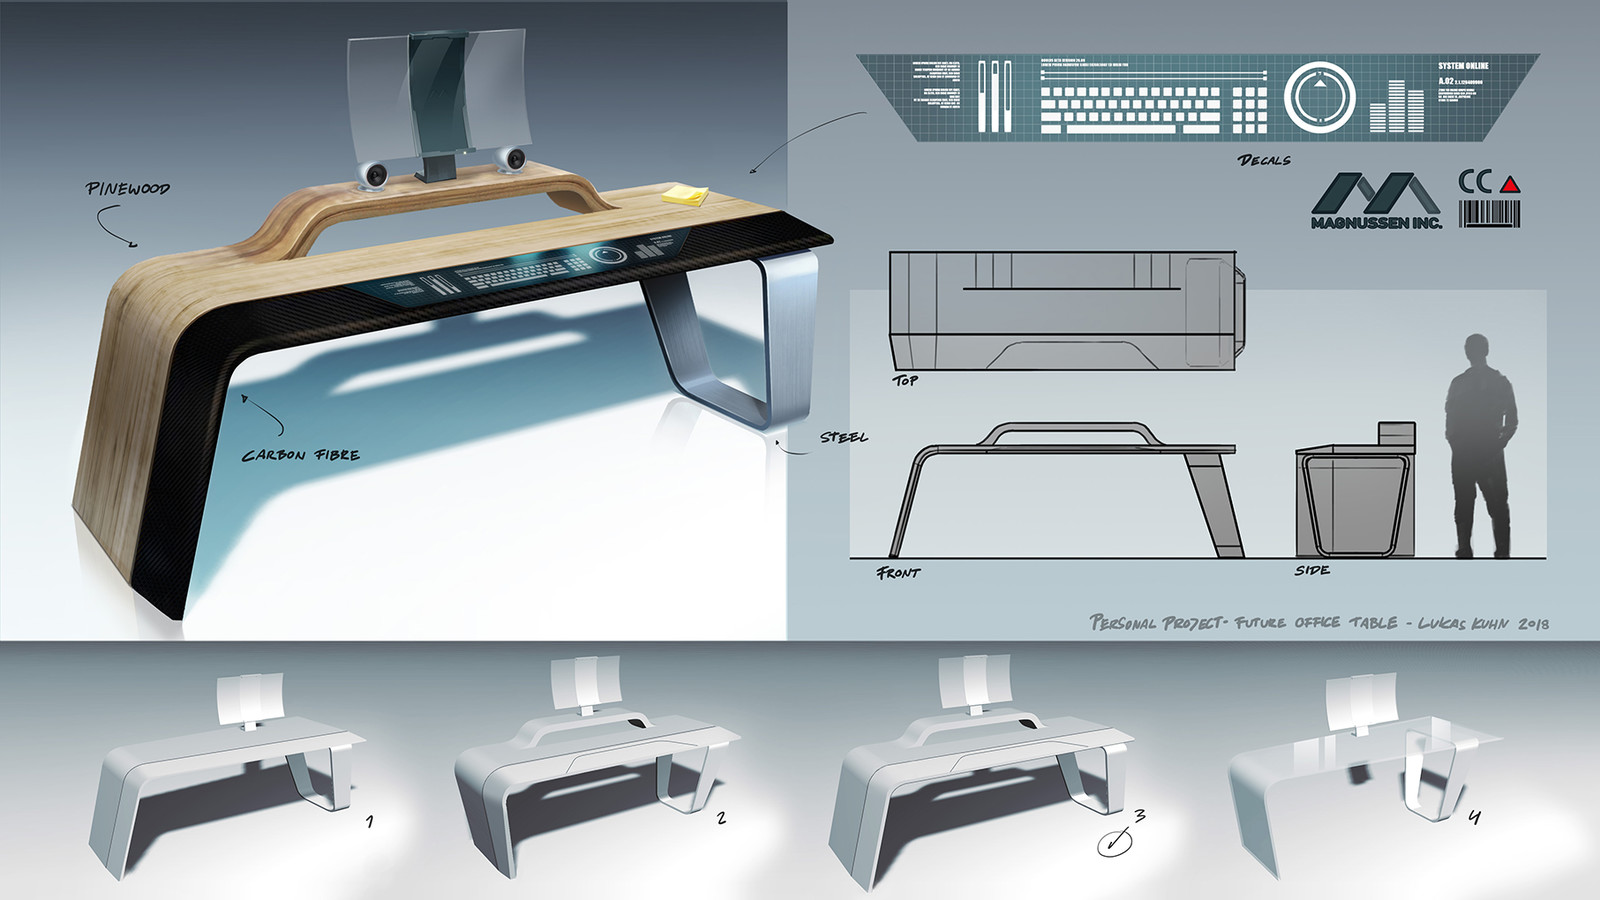 Personal Project - Future Office Table